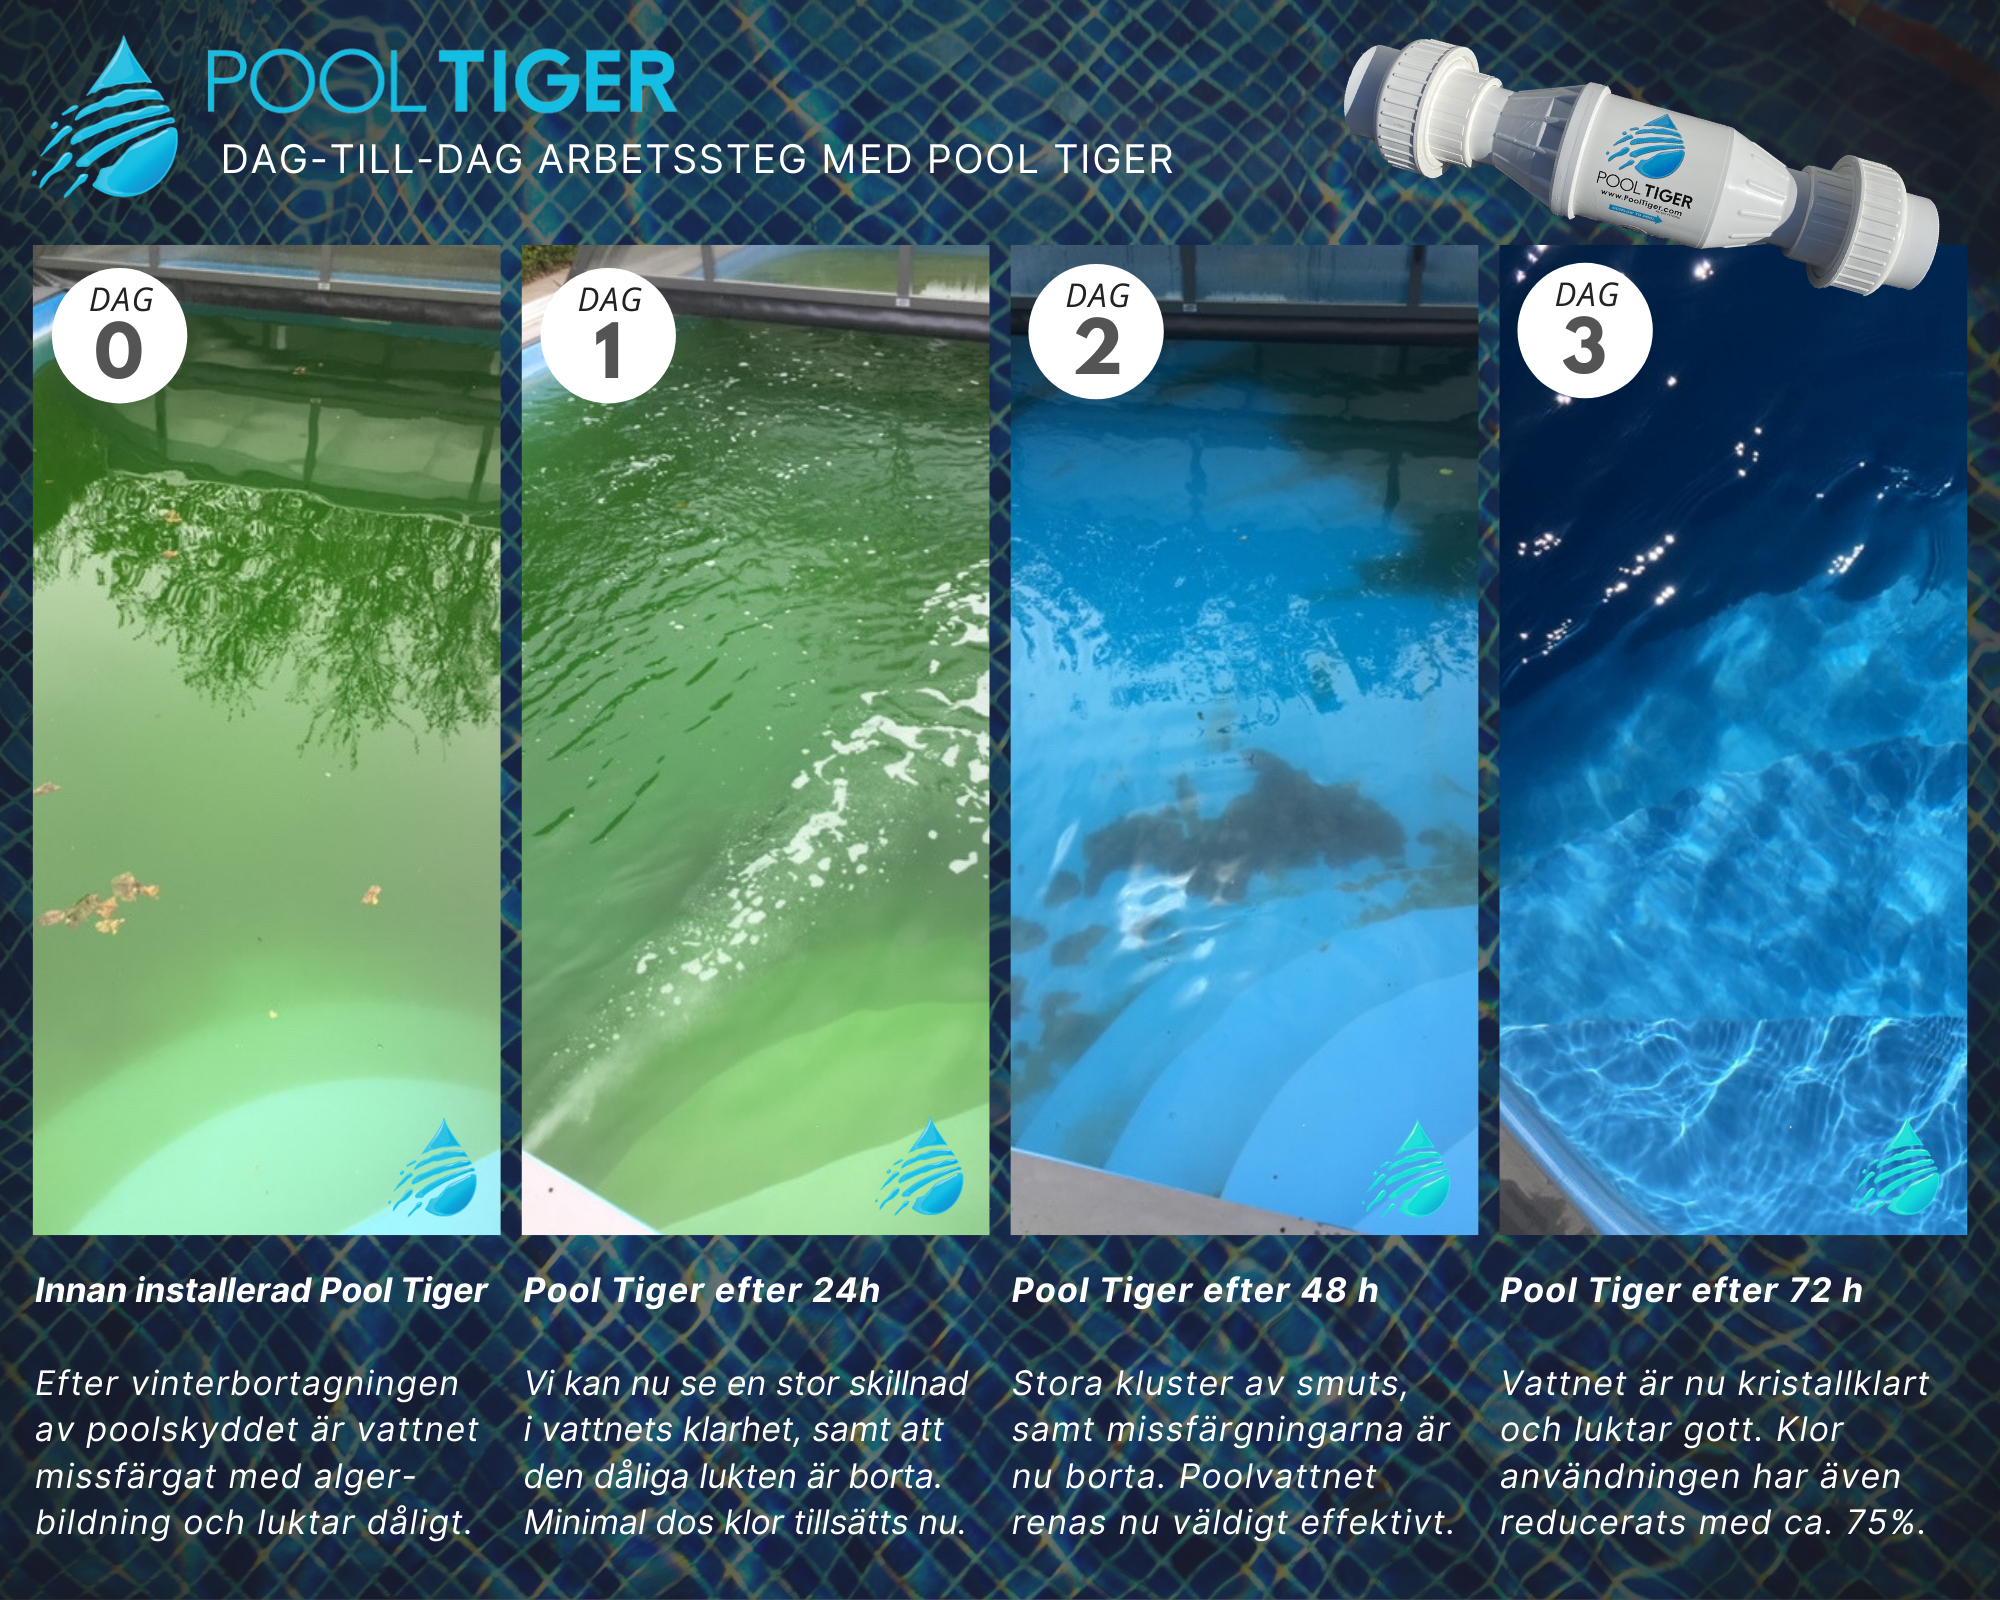 Pool Tiger 72h test